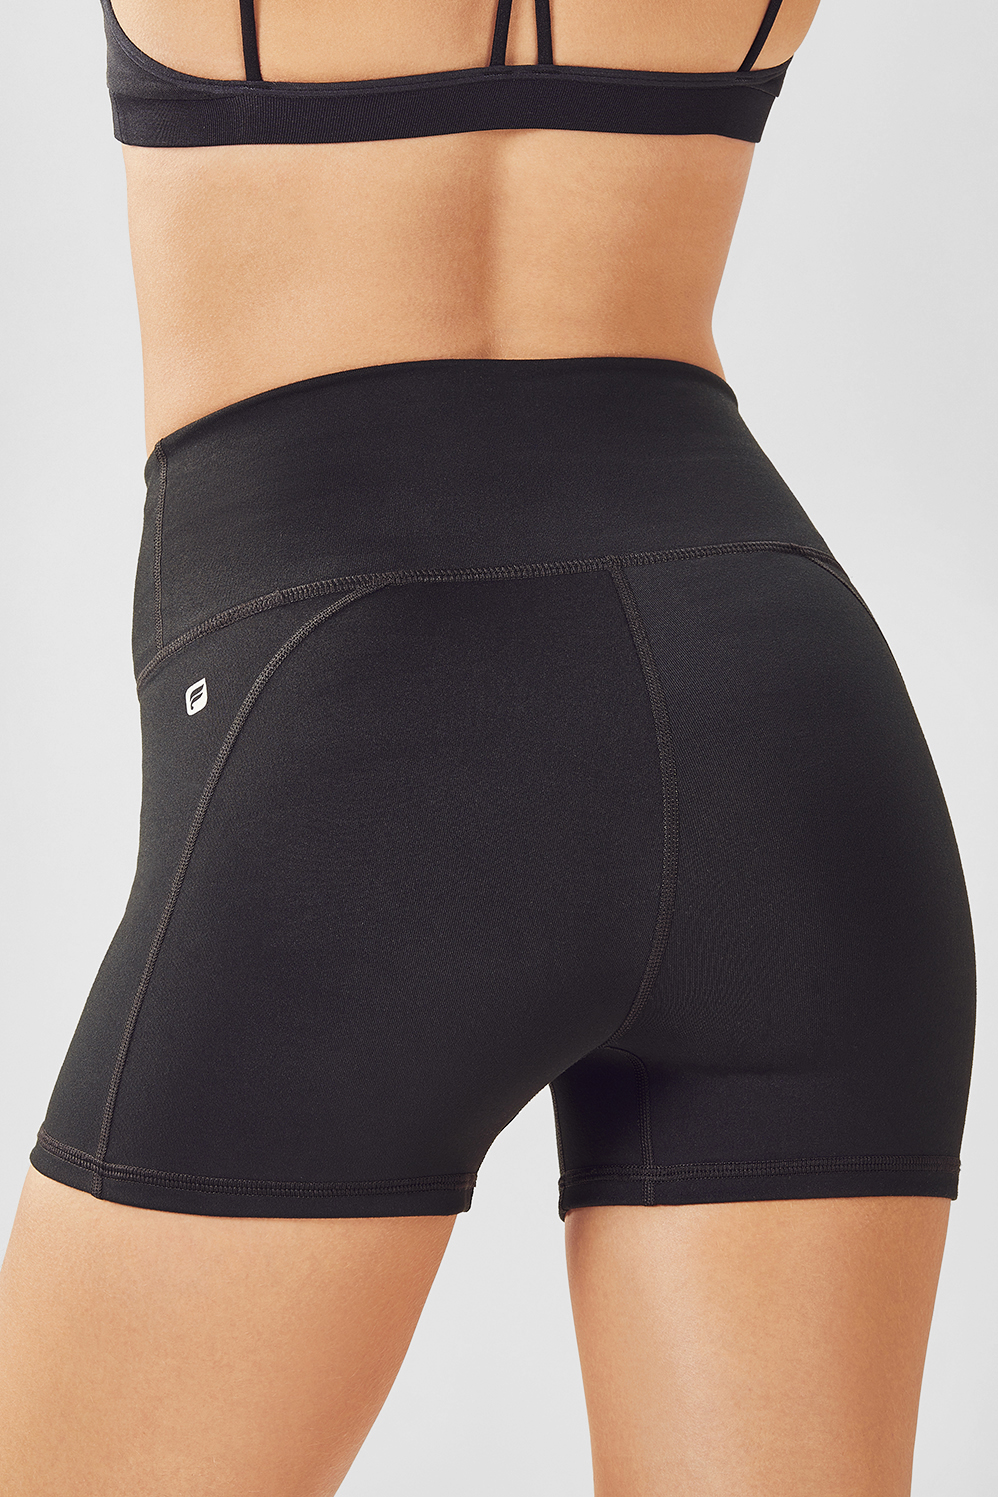 Fabletics Shorts High-Waisted Solid Powerhold Womens Black Size XXS